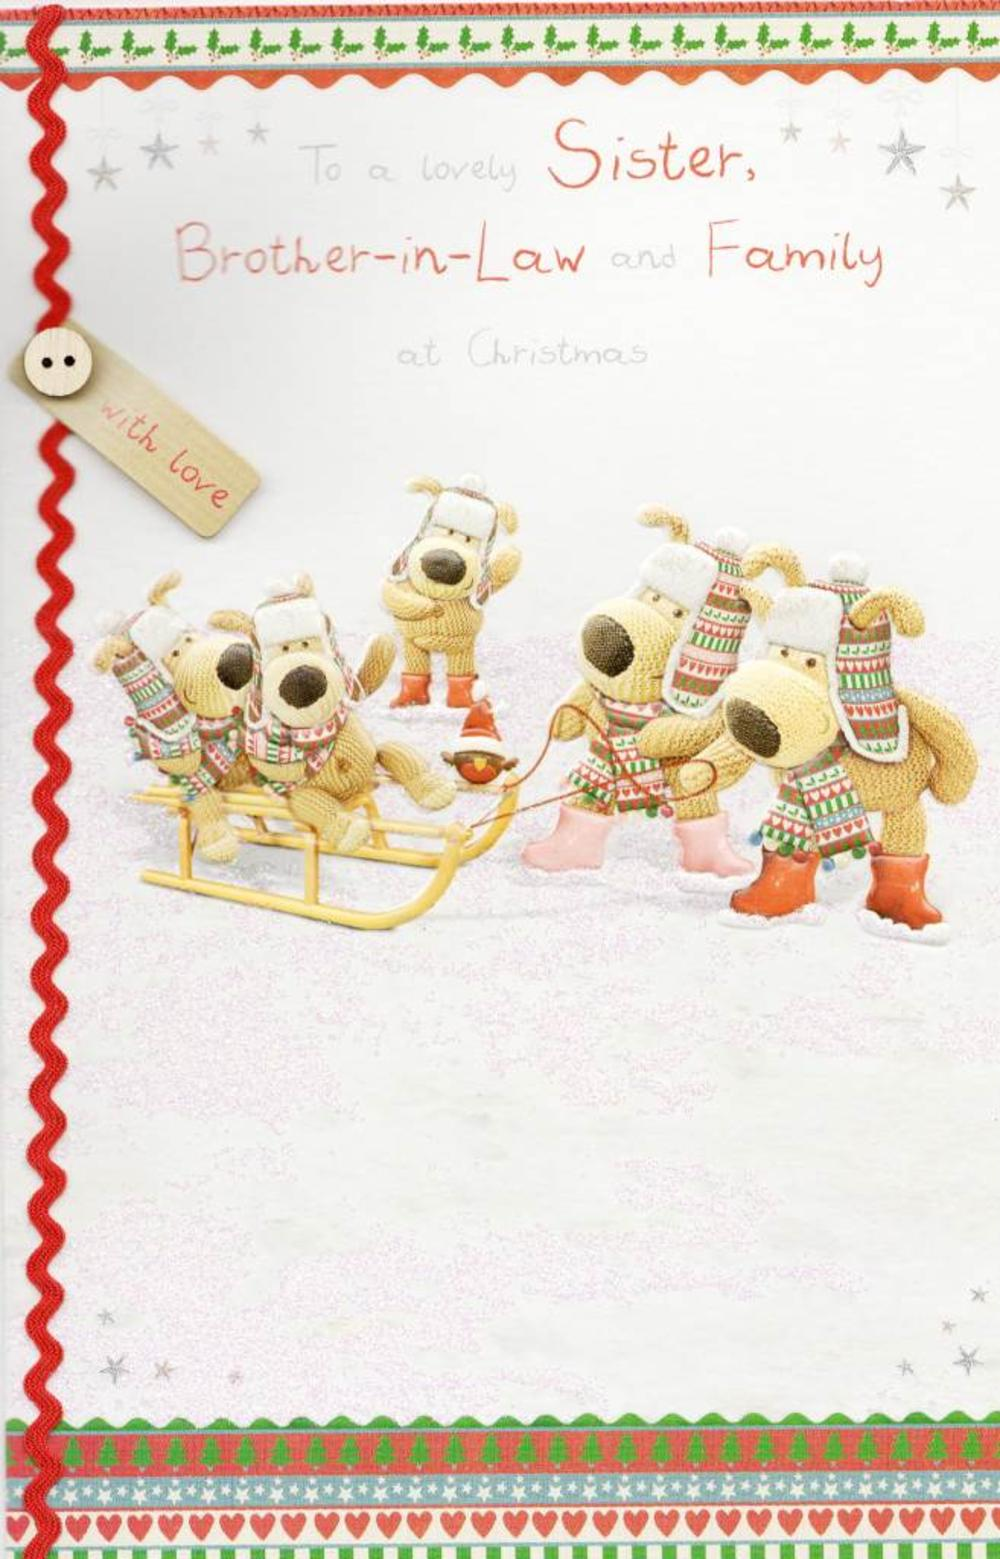 Boofle Sister & Brother-in-Law Christmas Card